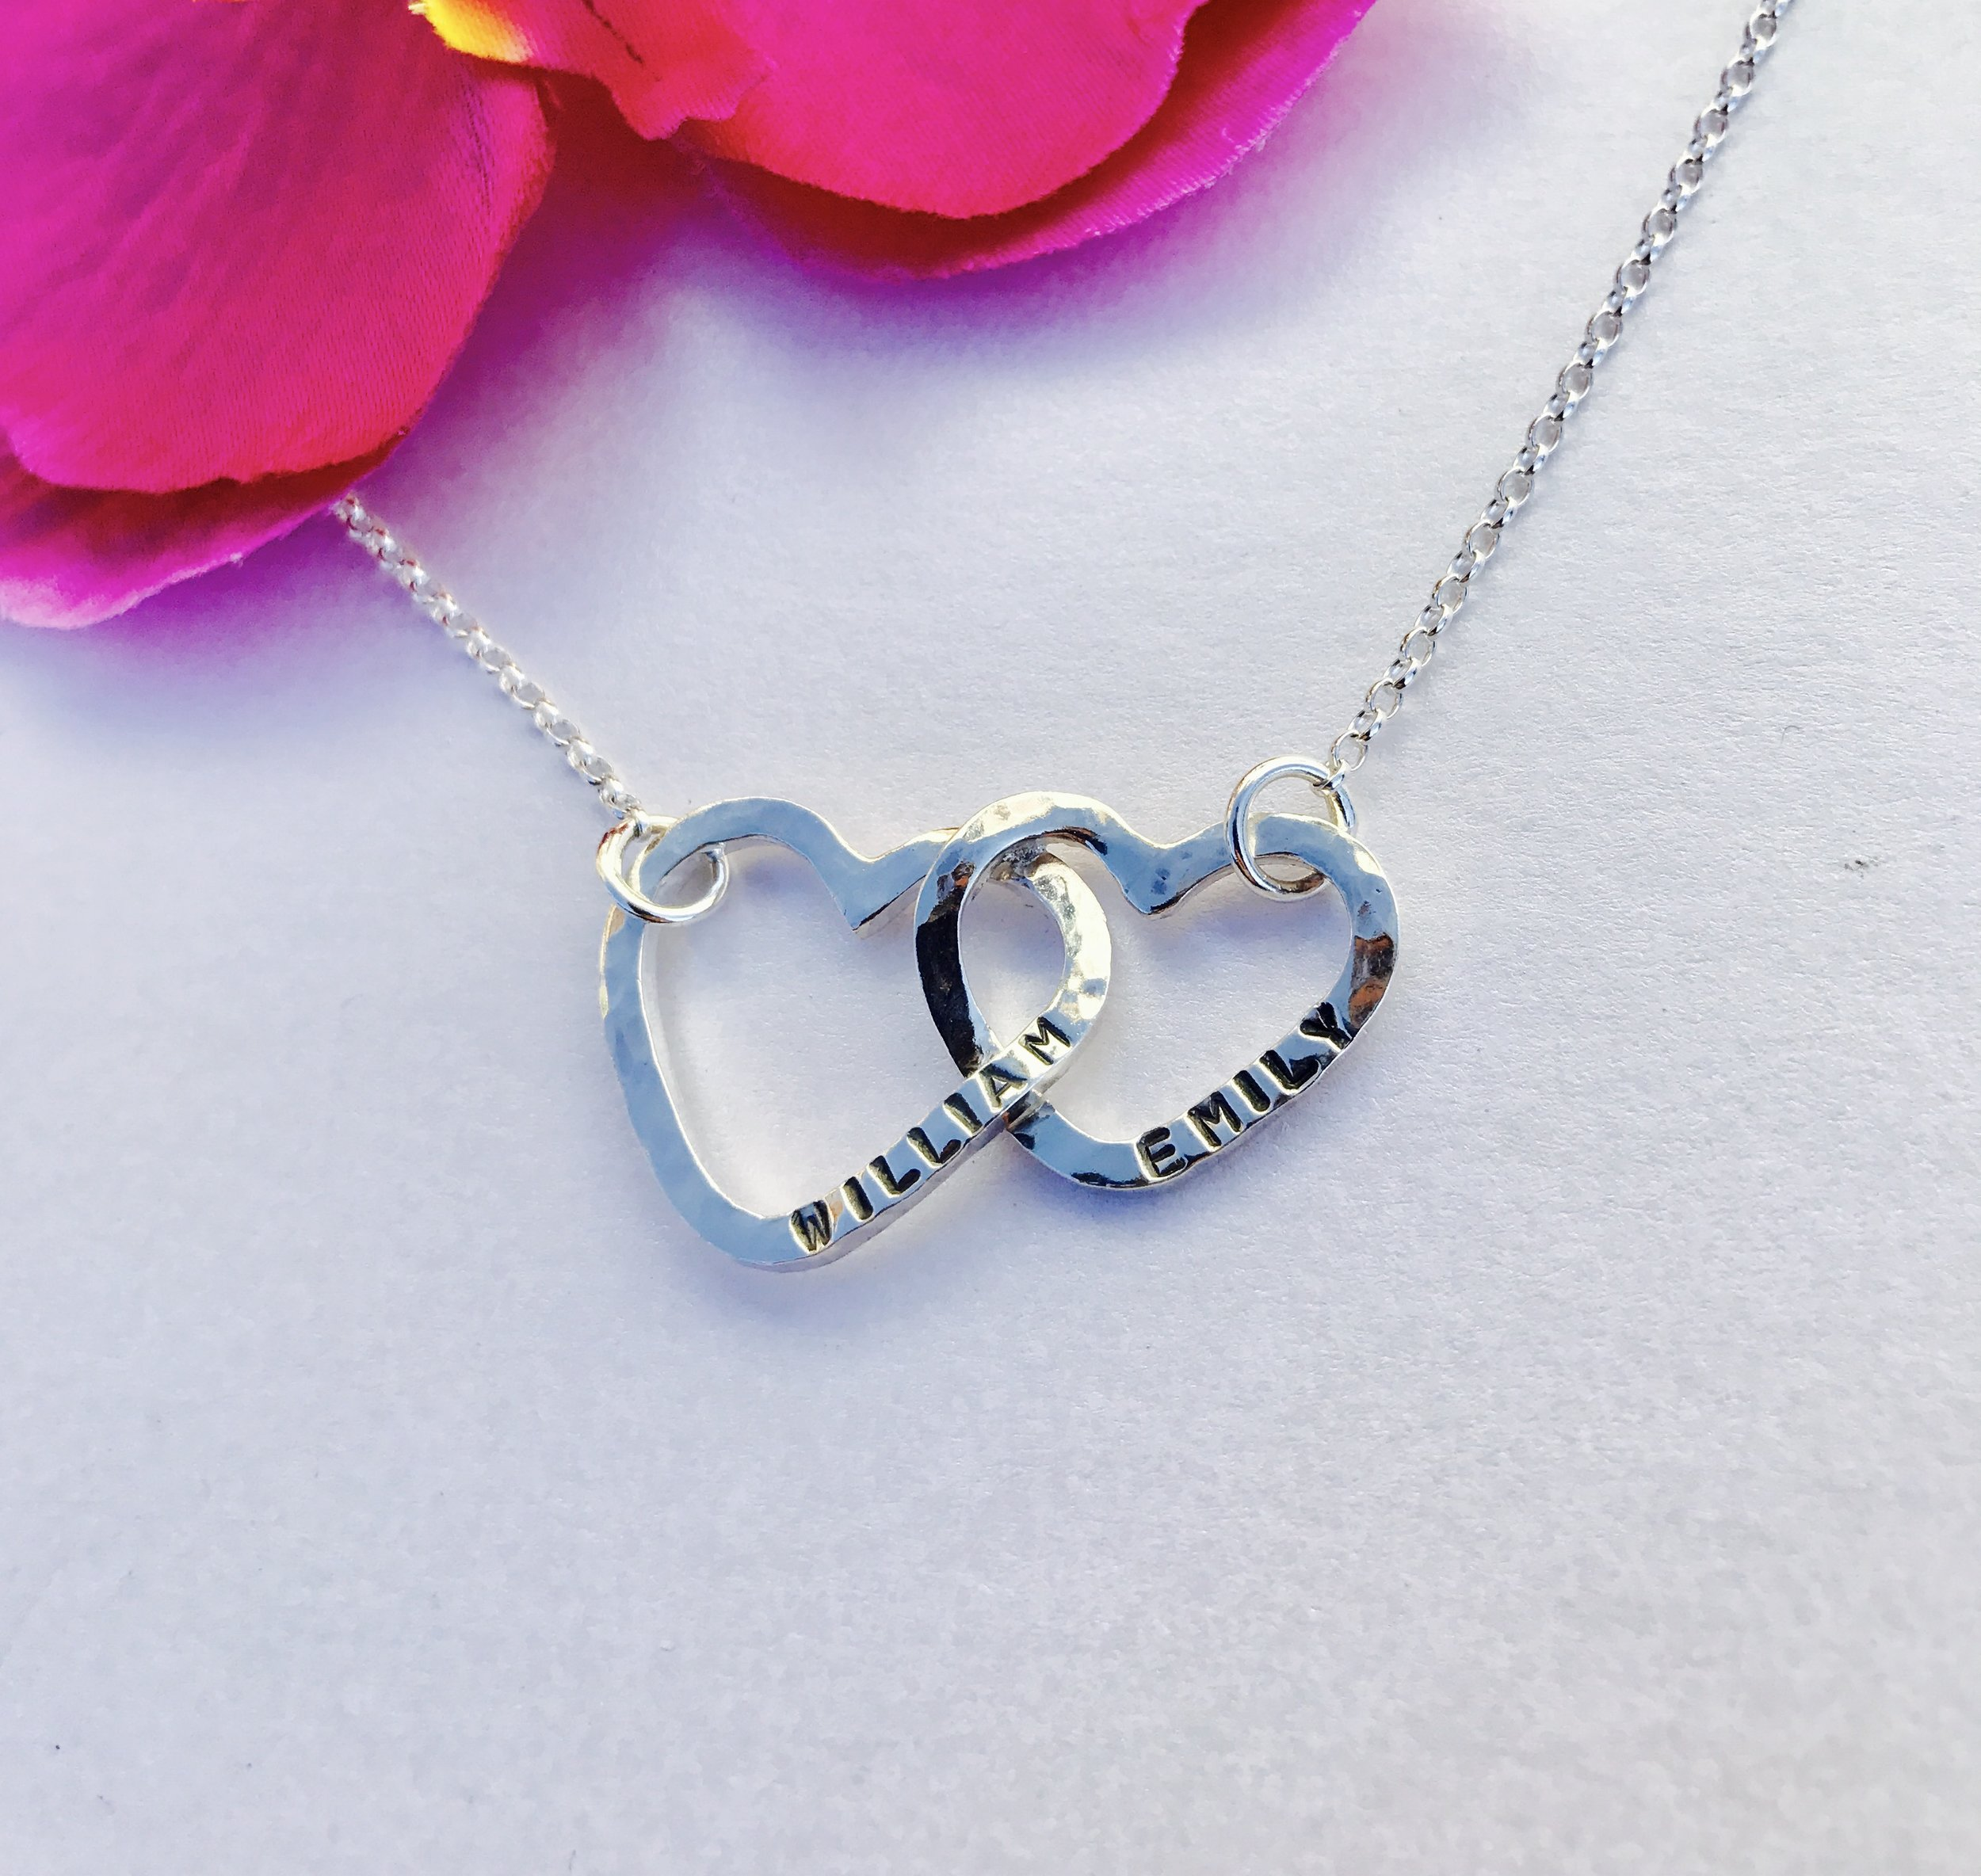 Personalised Hearts Connected Necklace